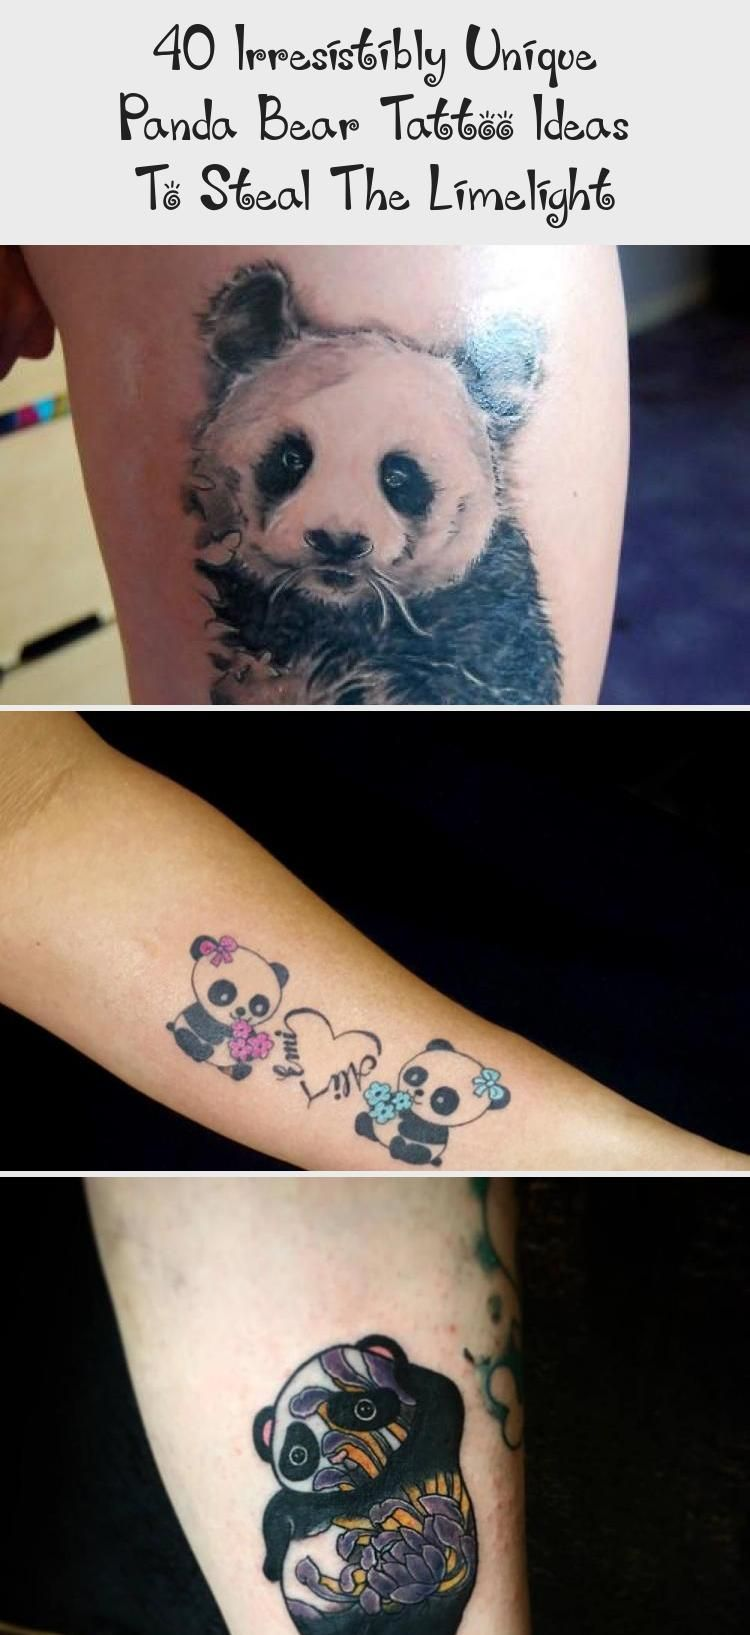 40 Irresistibly Unique Panda Bear Tattoo Ideas To Steal The Limelight #babypandabears 40 Irresistibly Unique Panda Bear Tattoo Ideas to Steal the Limelight #tattoo #tattooideas #pandatattoos pandatattooideas #pandabeartattoo #smallpandabeartattoo #ArtTattooEscrita #ArtTattooFrida #ArtTattooSymbols #ItalianArtTattoo #ArtTattooSimple #babypandabears